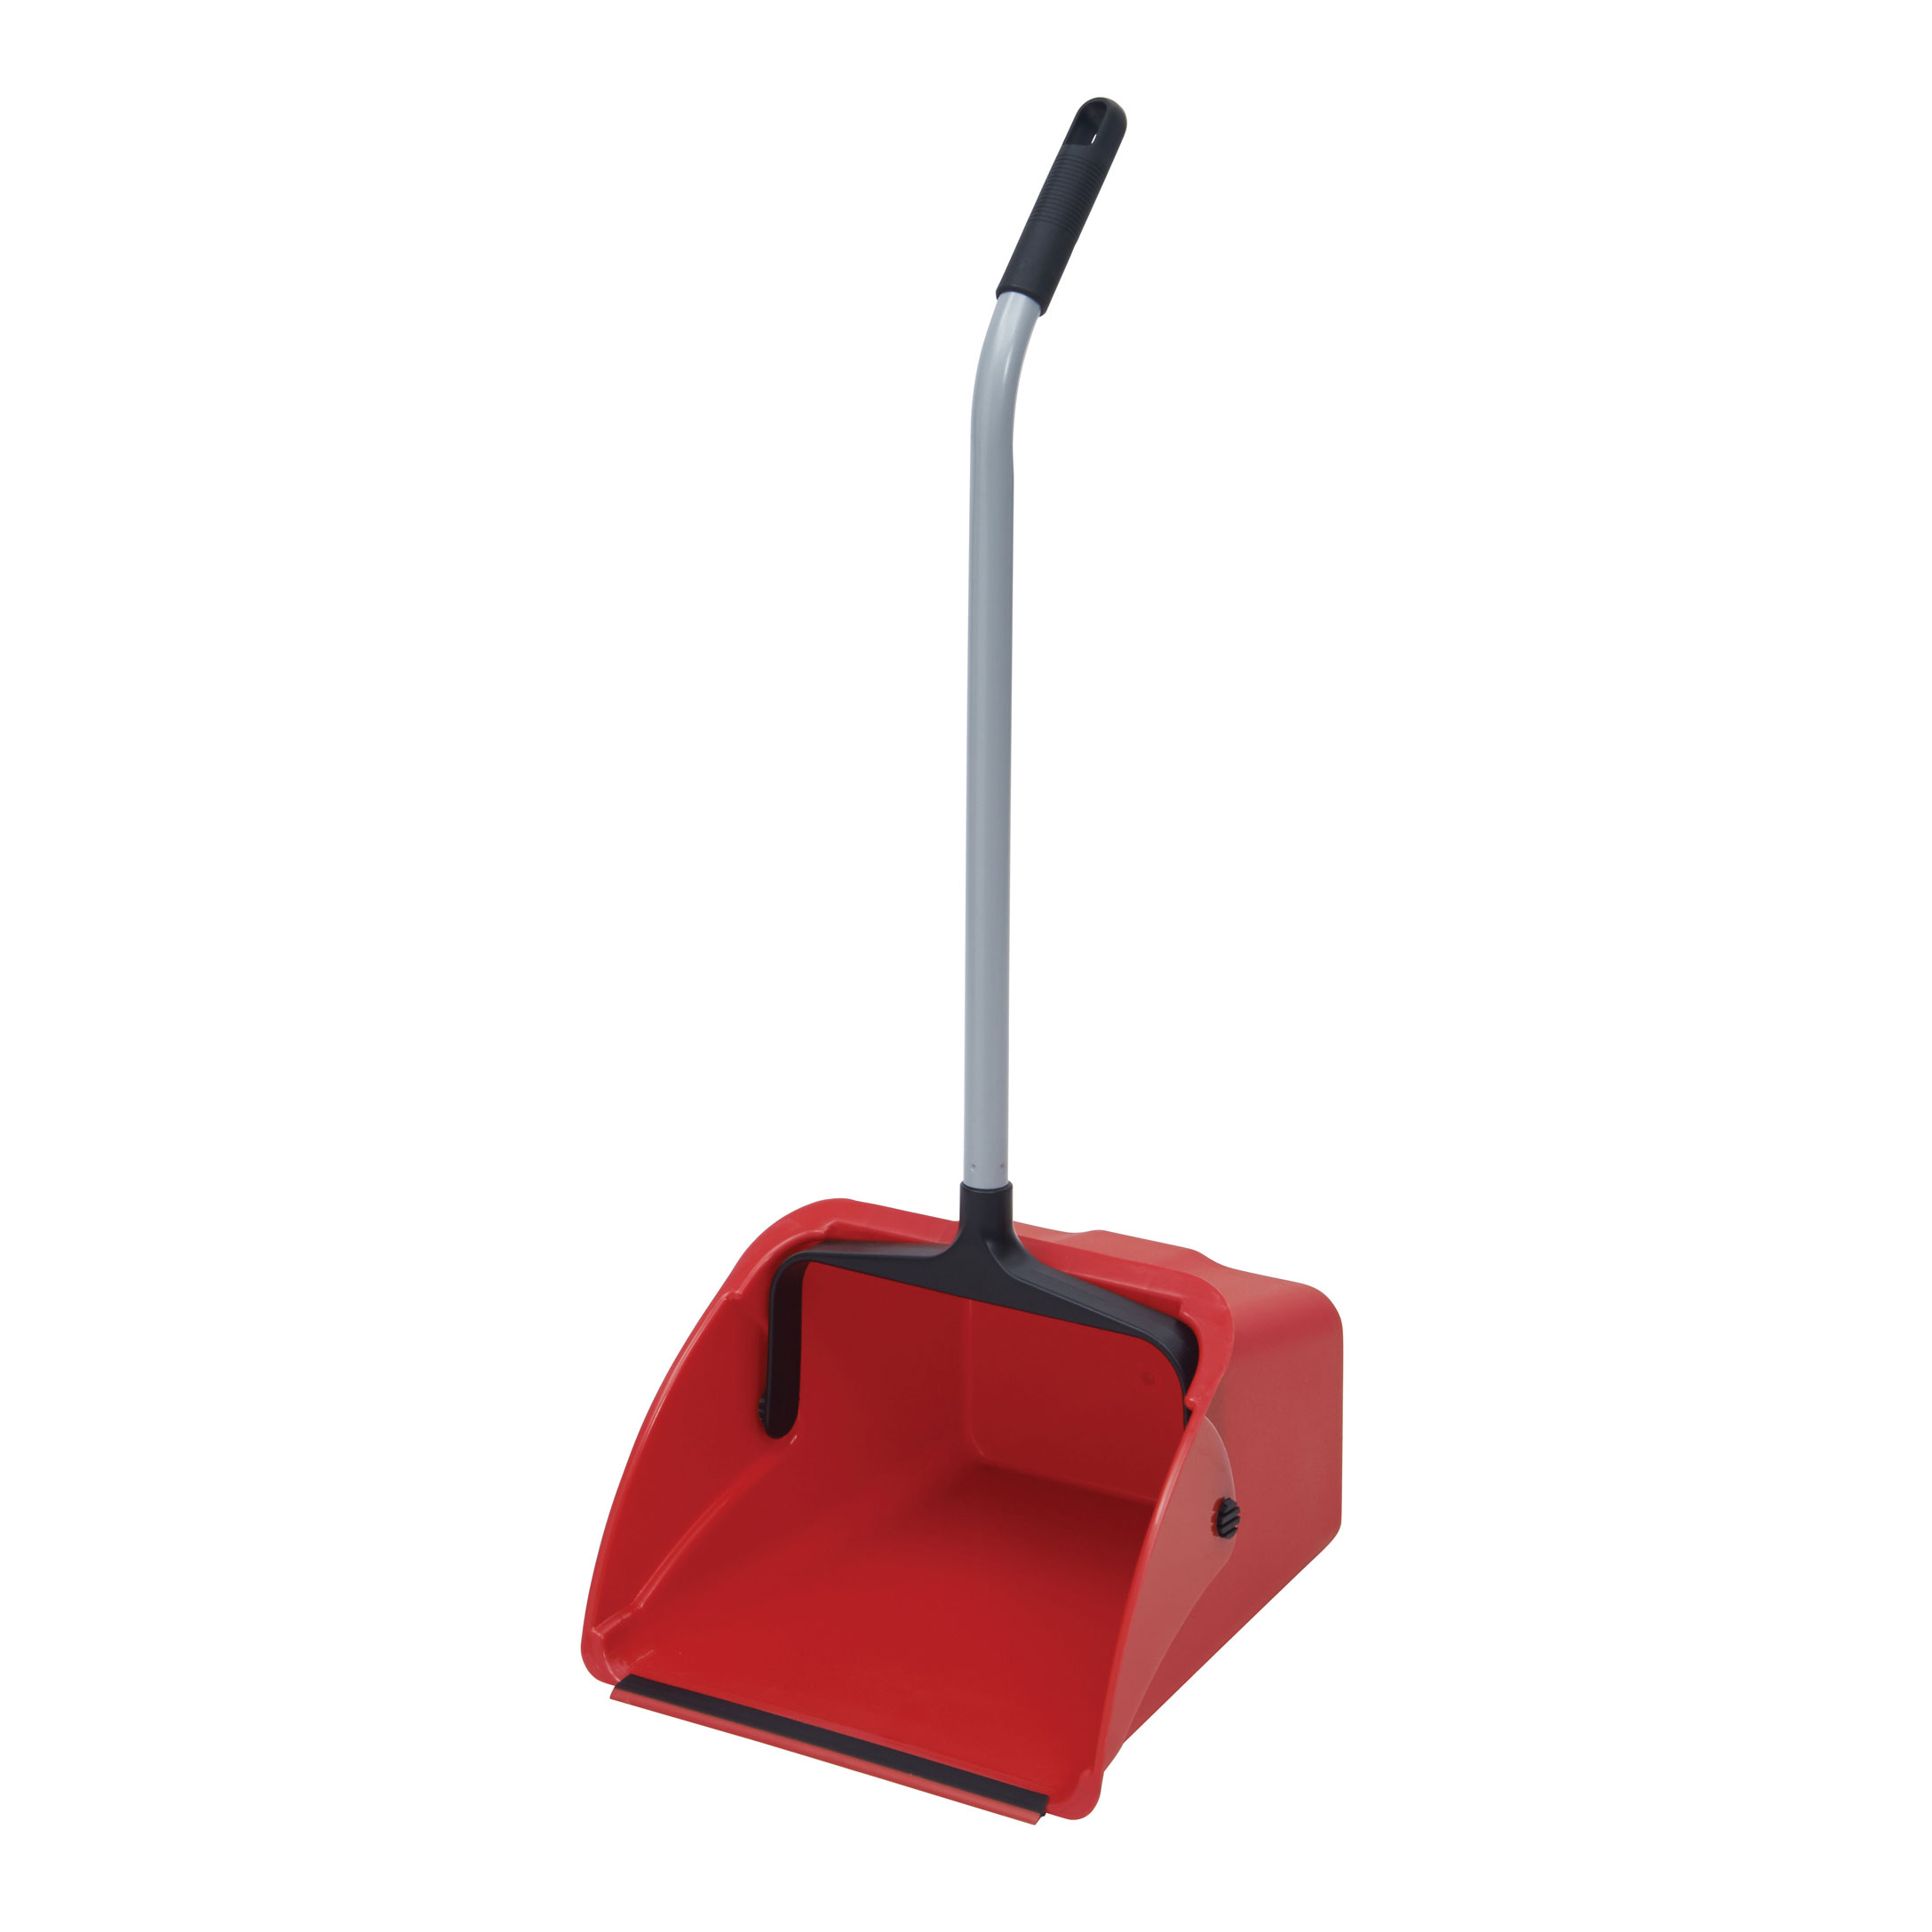 Winco DP-14R lobby dust pan